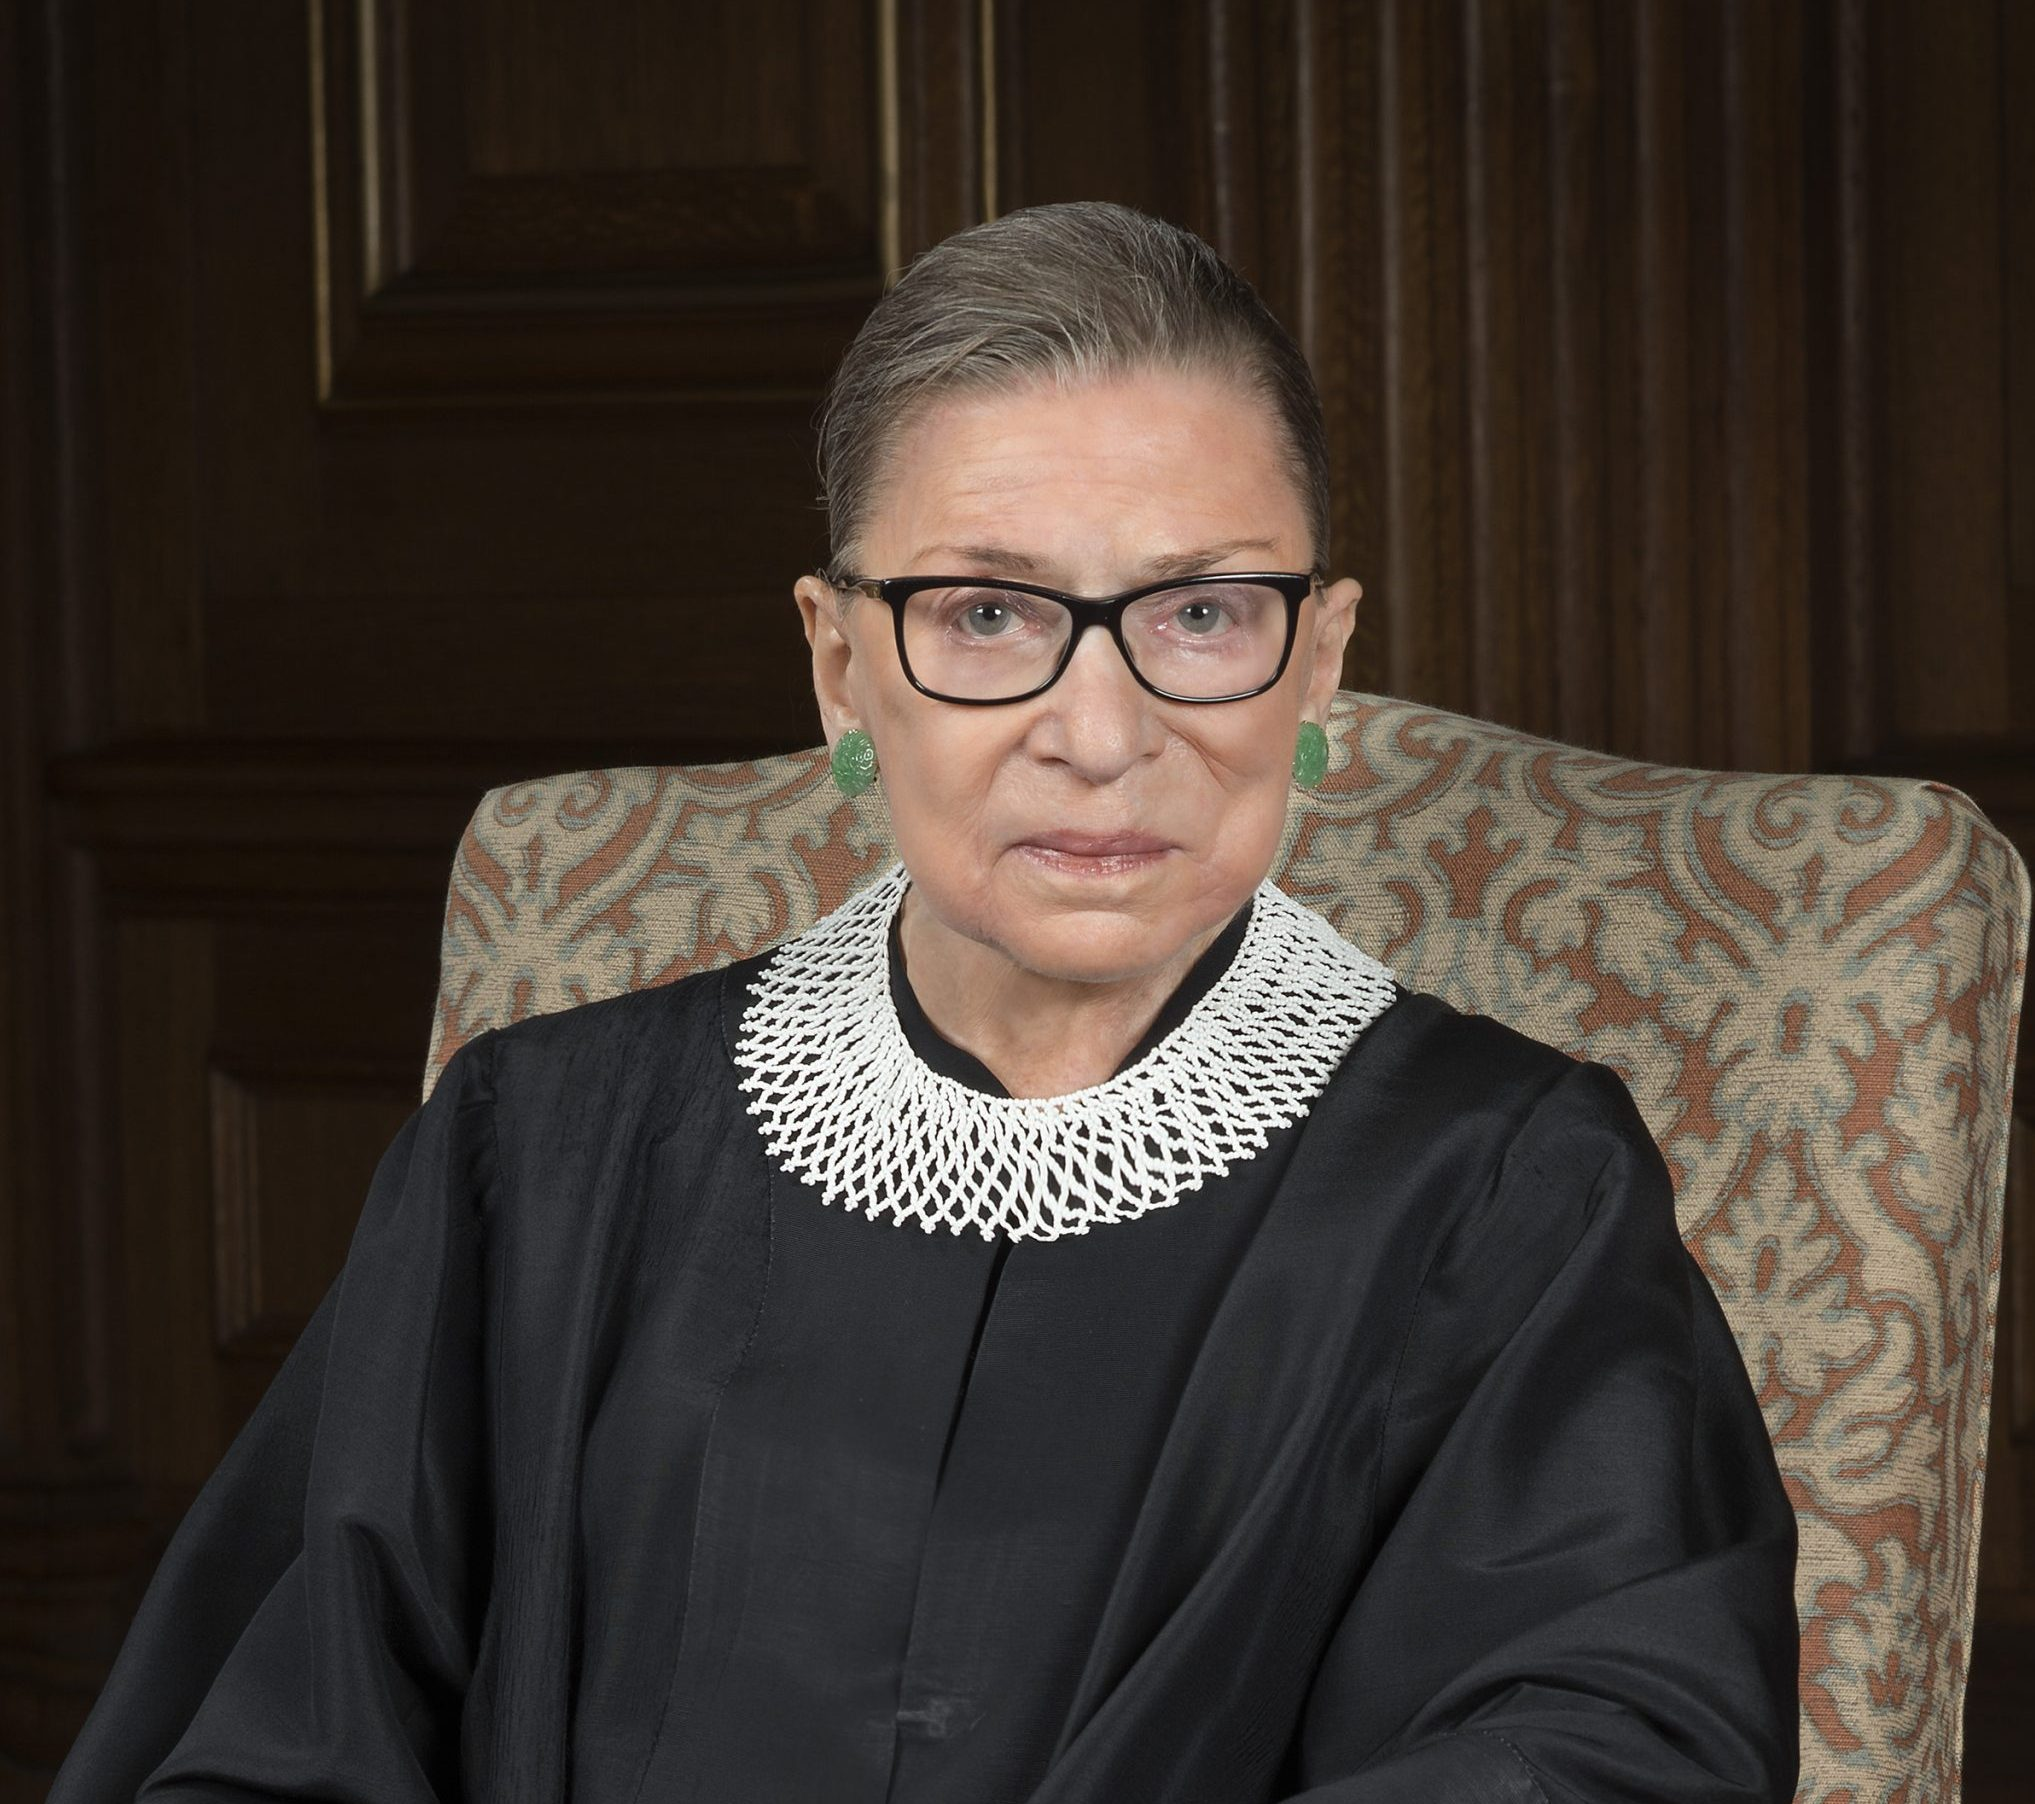 Ginsburg seated in her robe, Supreme Court official portrait 2016